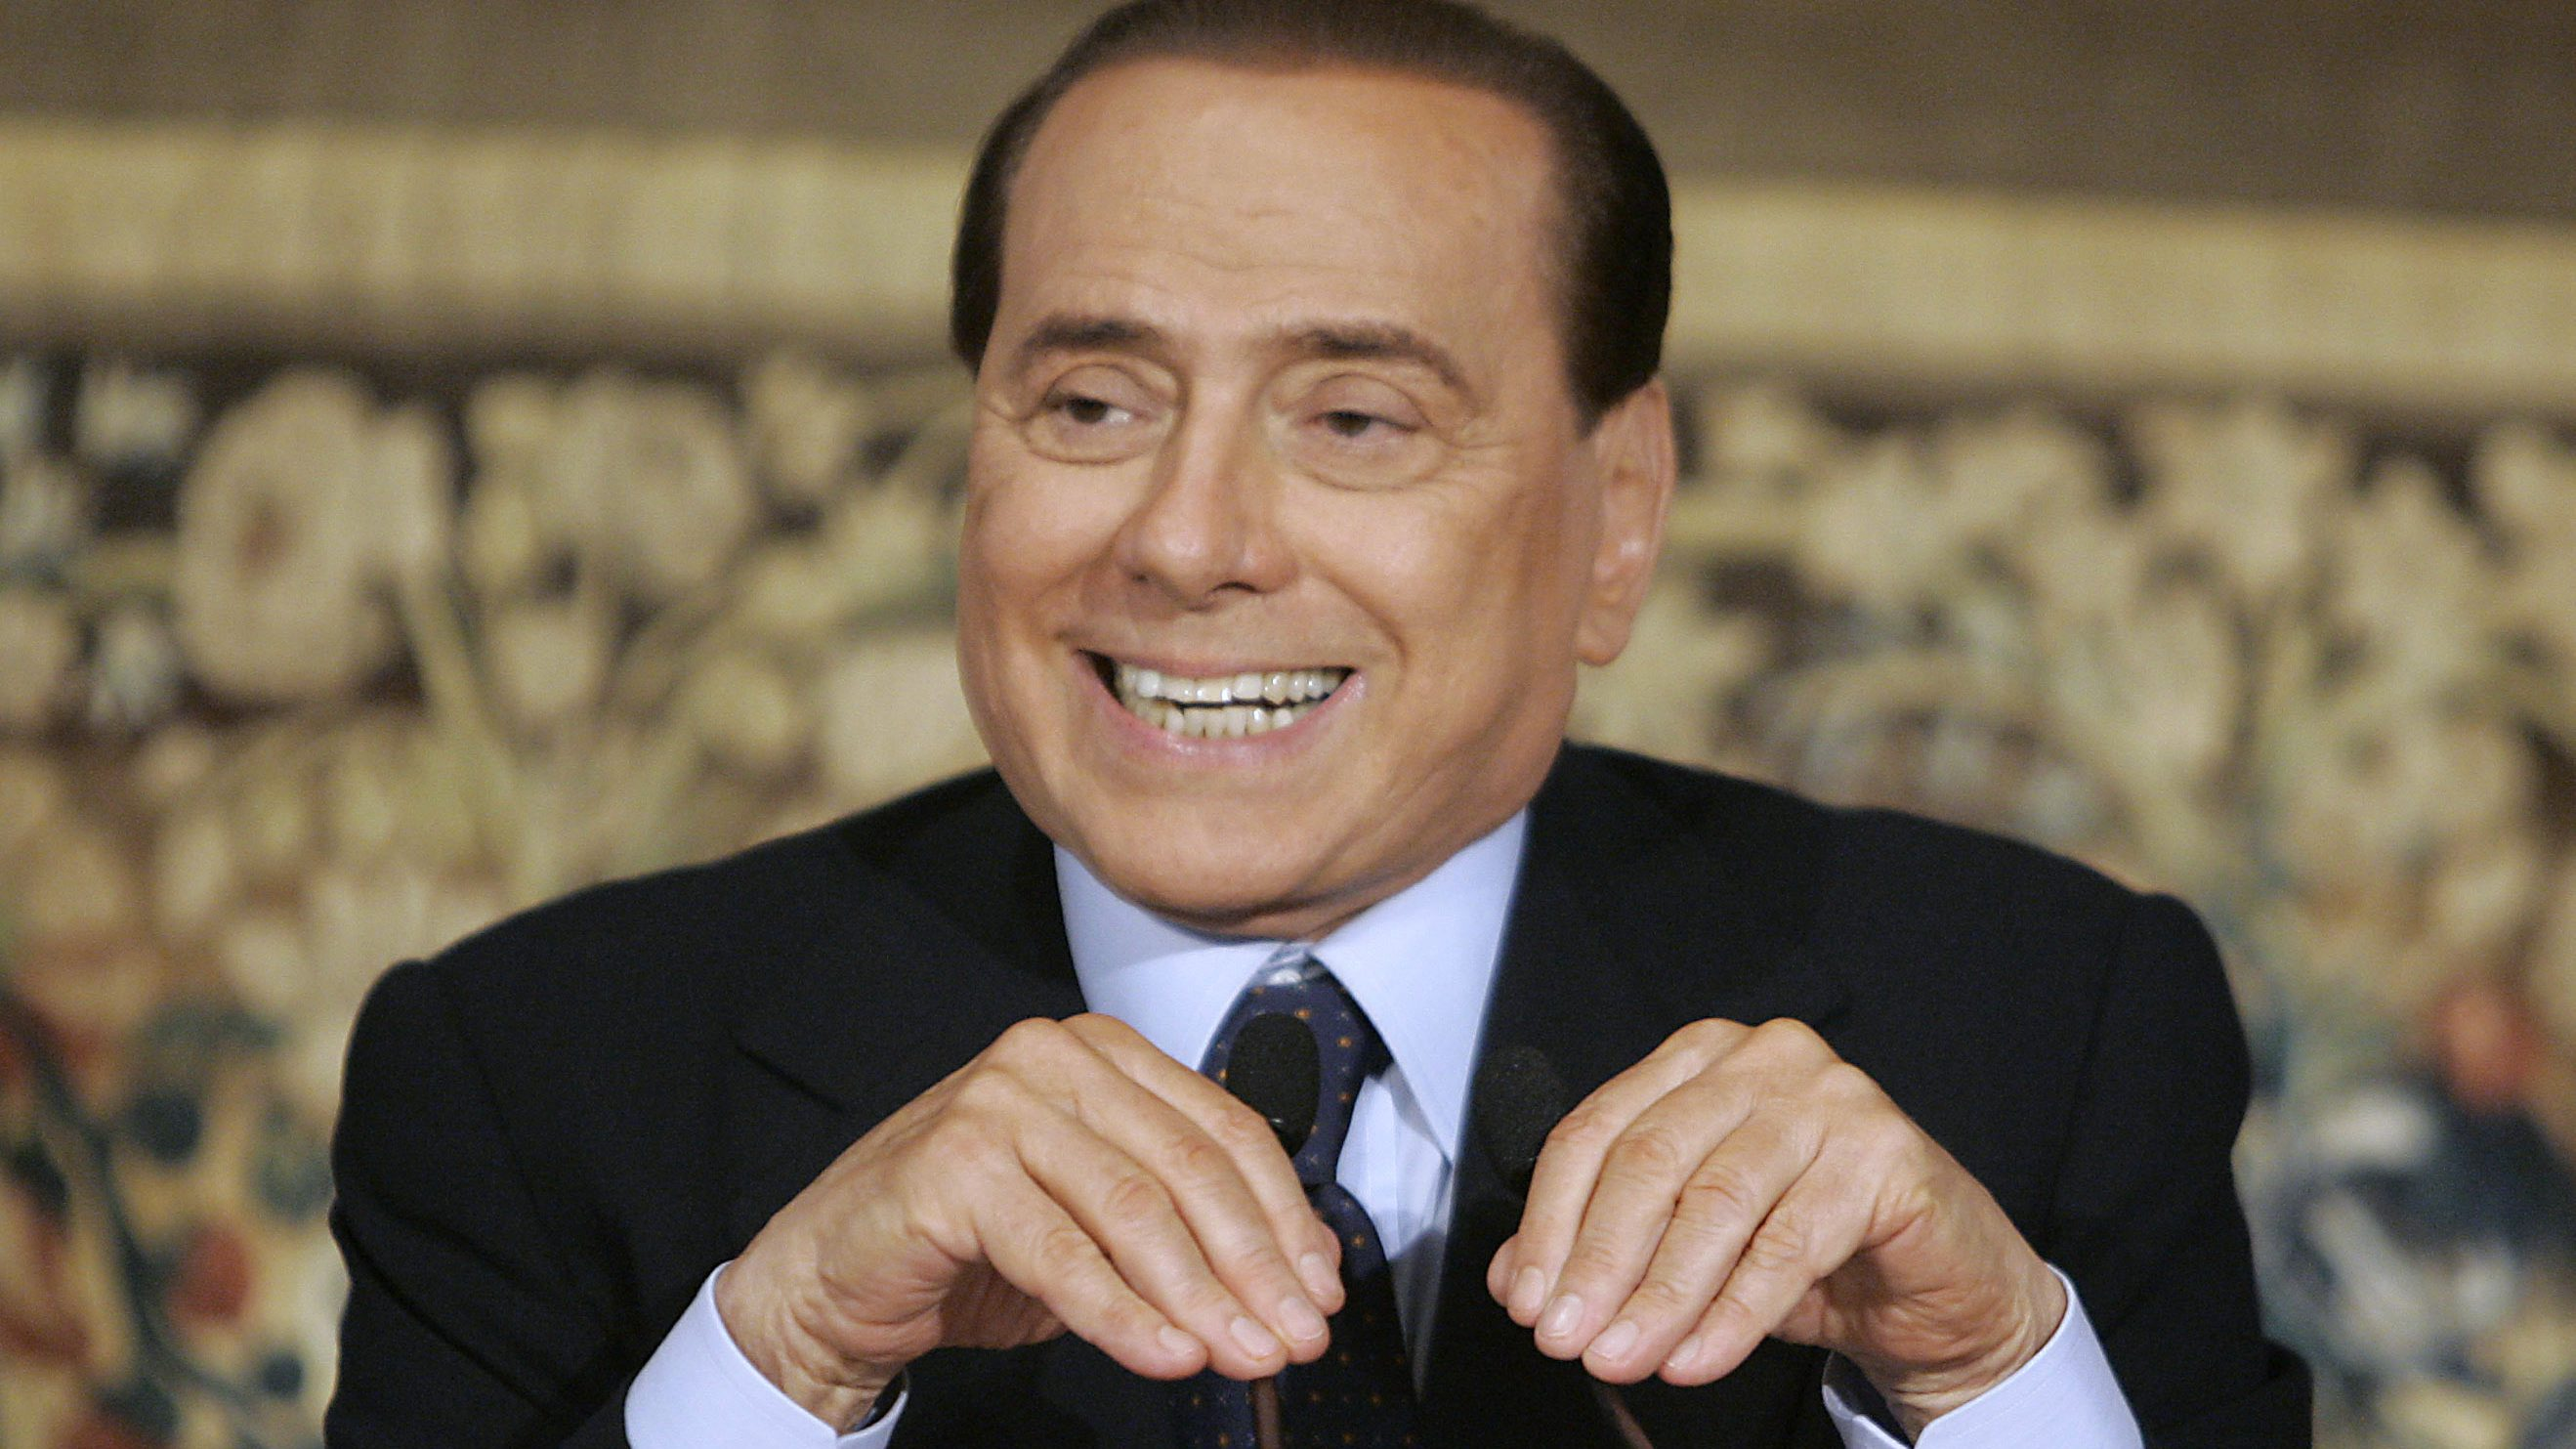 Italian Premier Silvio Berlusconi reacts during a press conference at Palazzo Chigi, premier's office, in Rome, Friday, Aug. 7, 2009. Berlusconi made one his strongest denials yet in a scandal over alleged relationships with young women, insisting on Friday he has nothing to hid and nothing to apologize for. (AP Photo/Pier Paolo Cito)